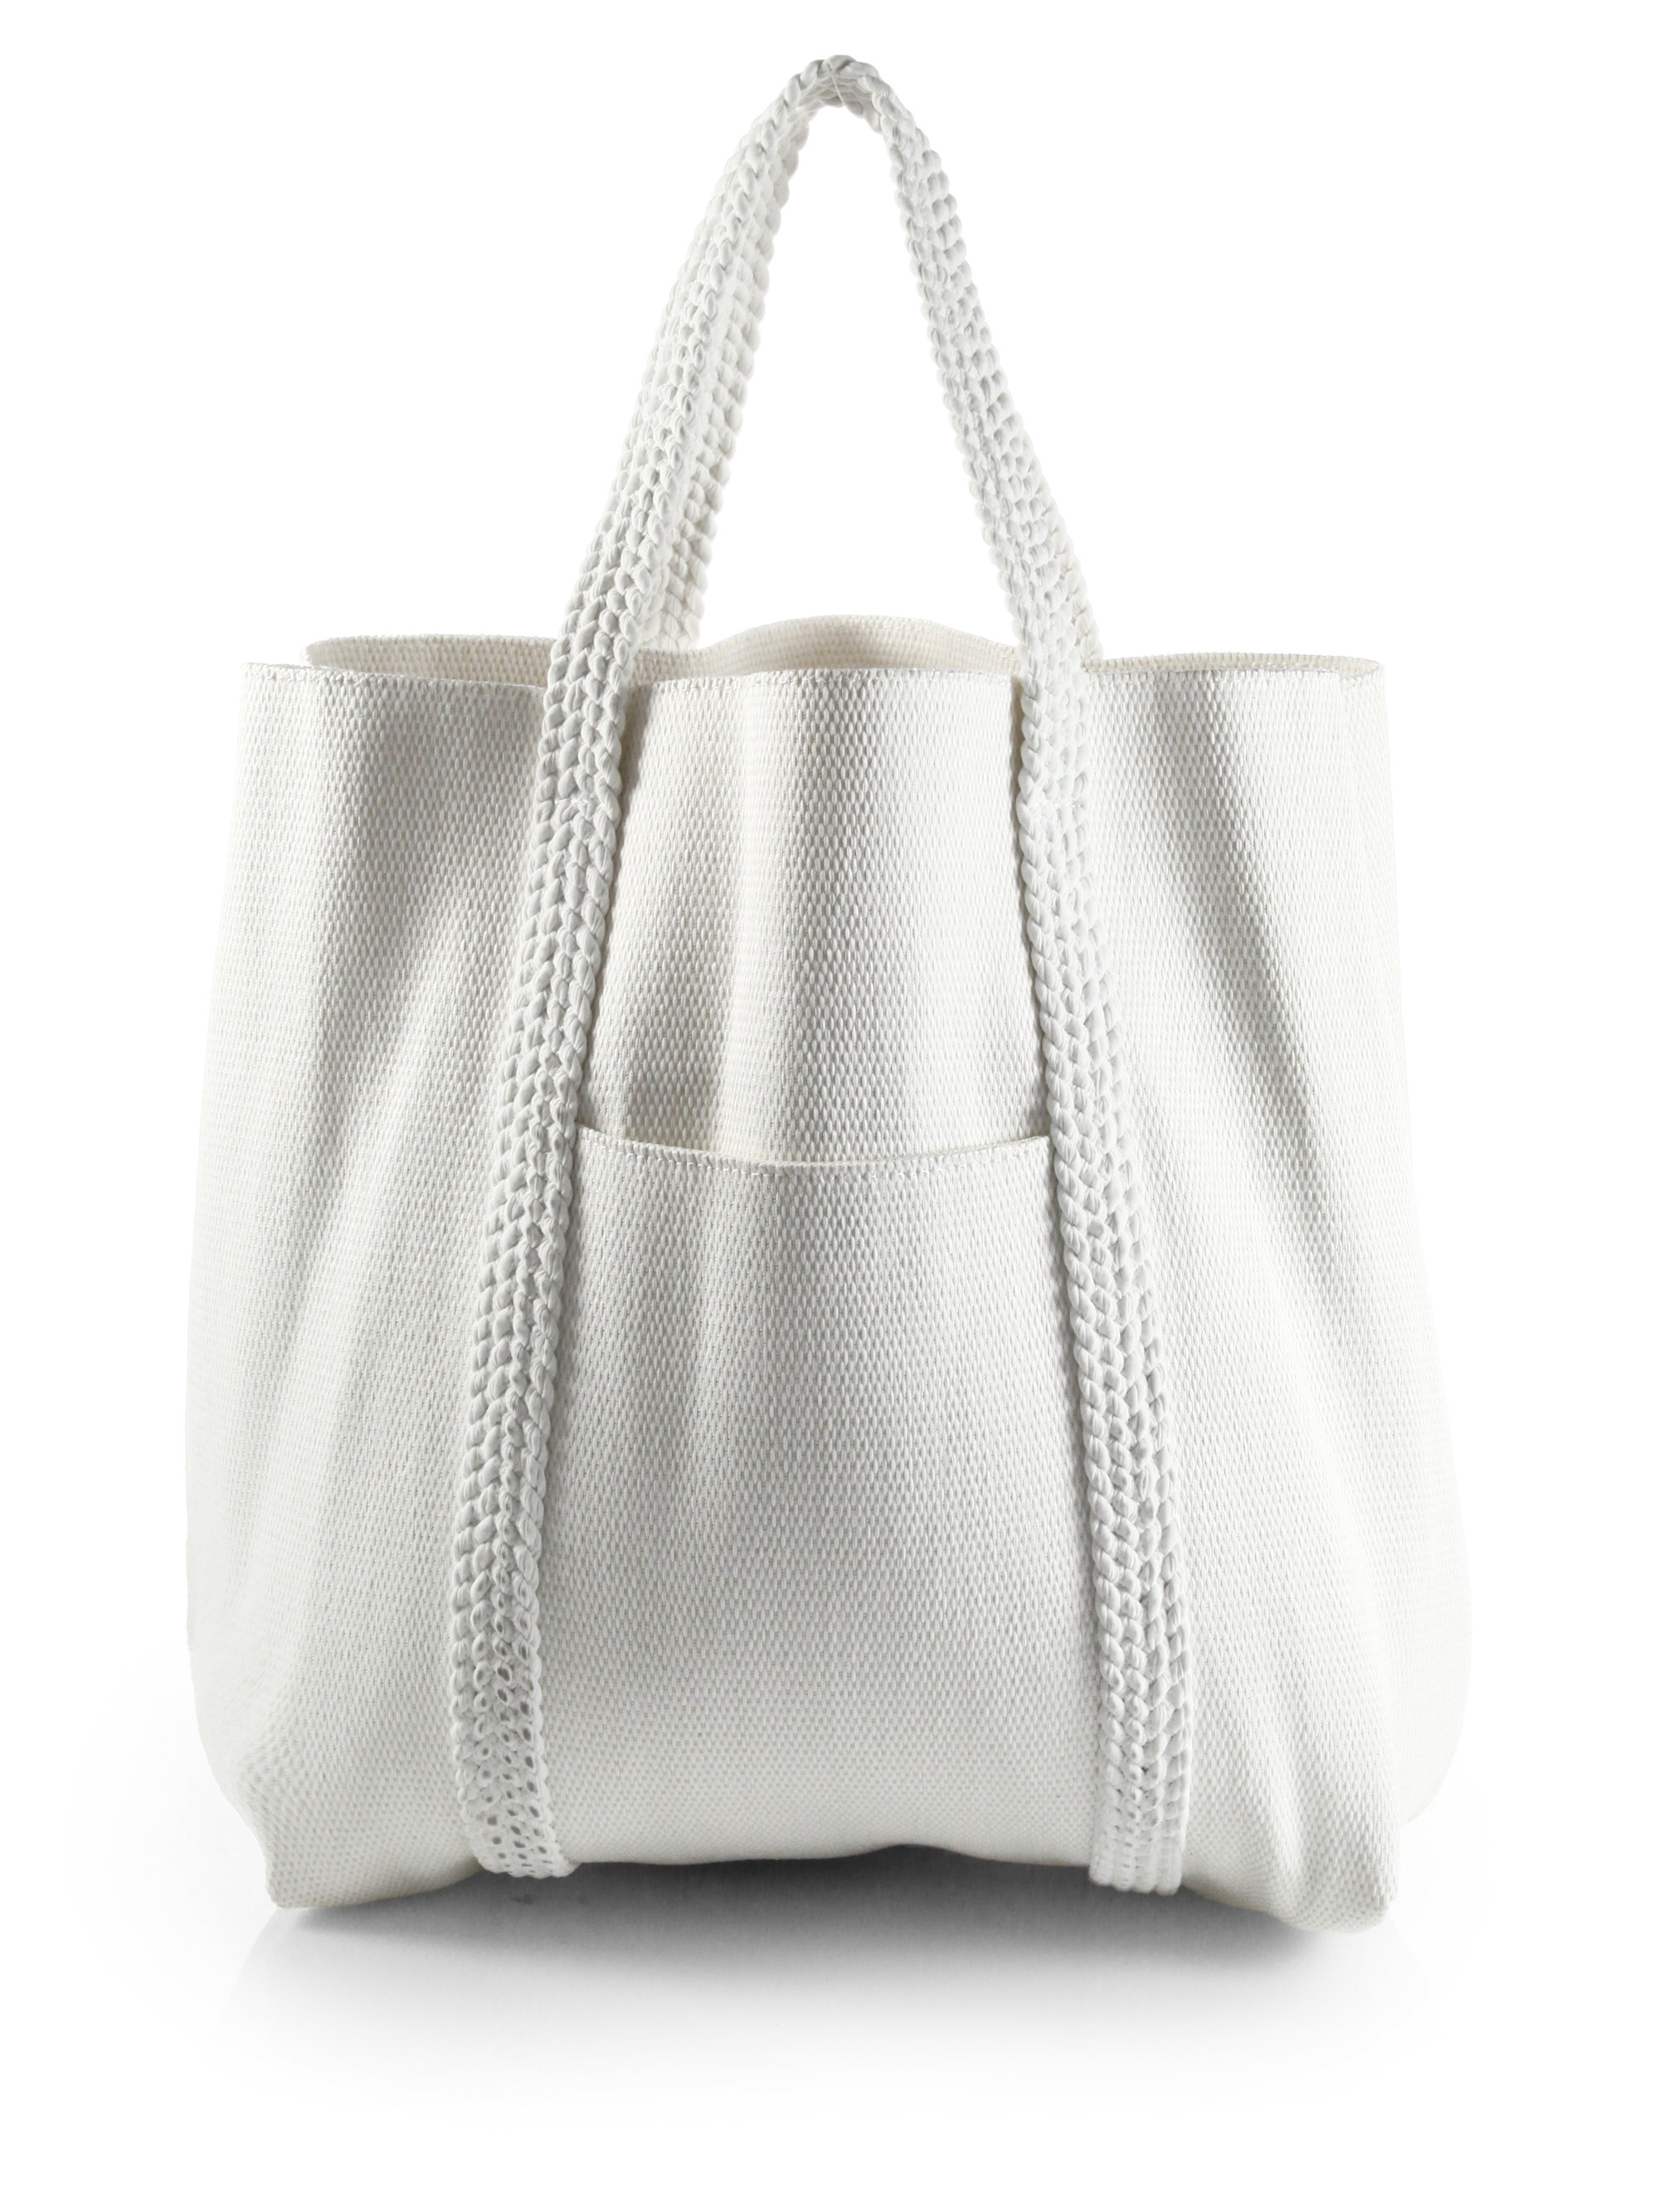 Chloé Woven Beach Bag in White | Lyst